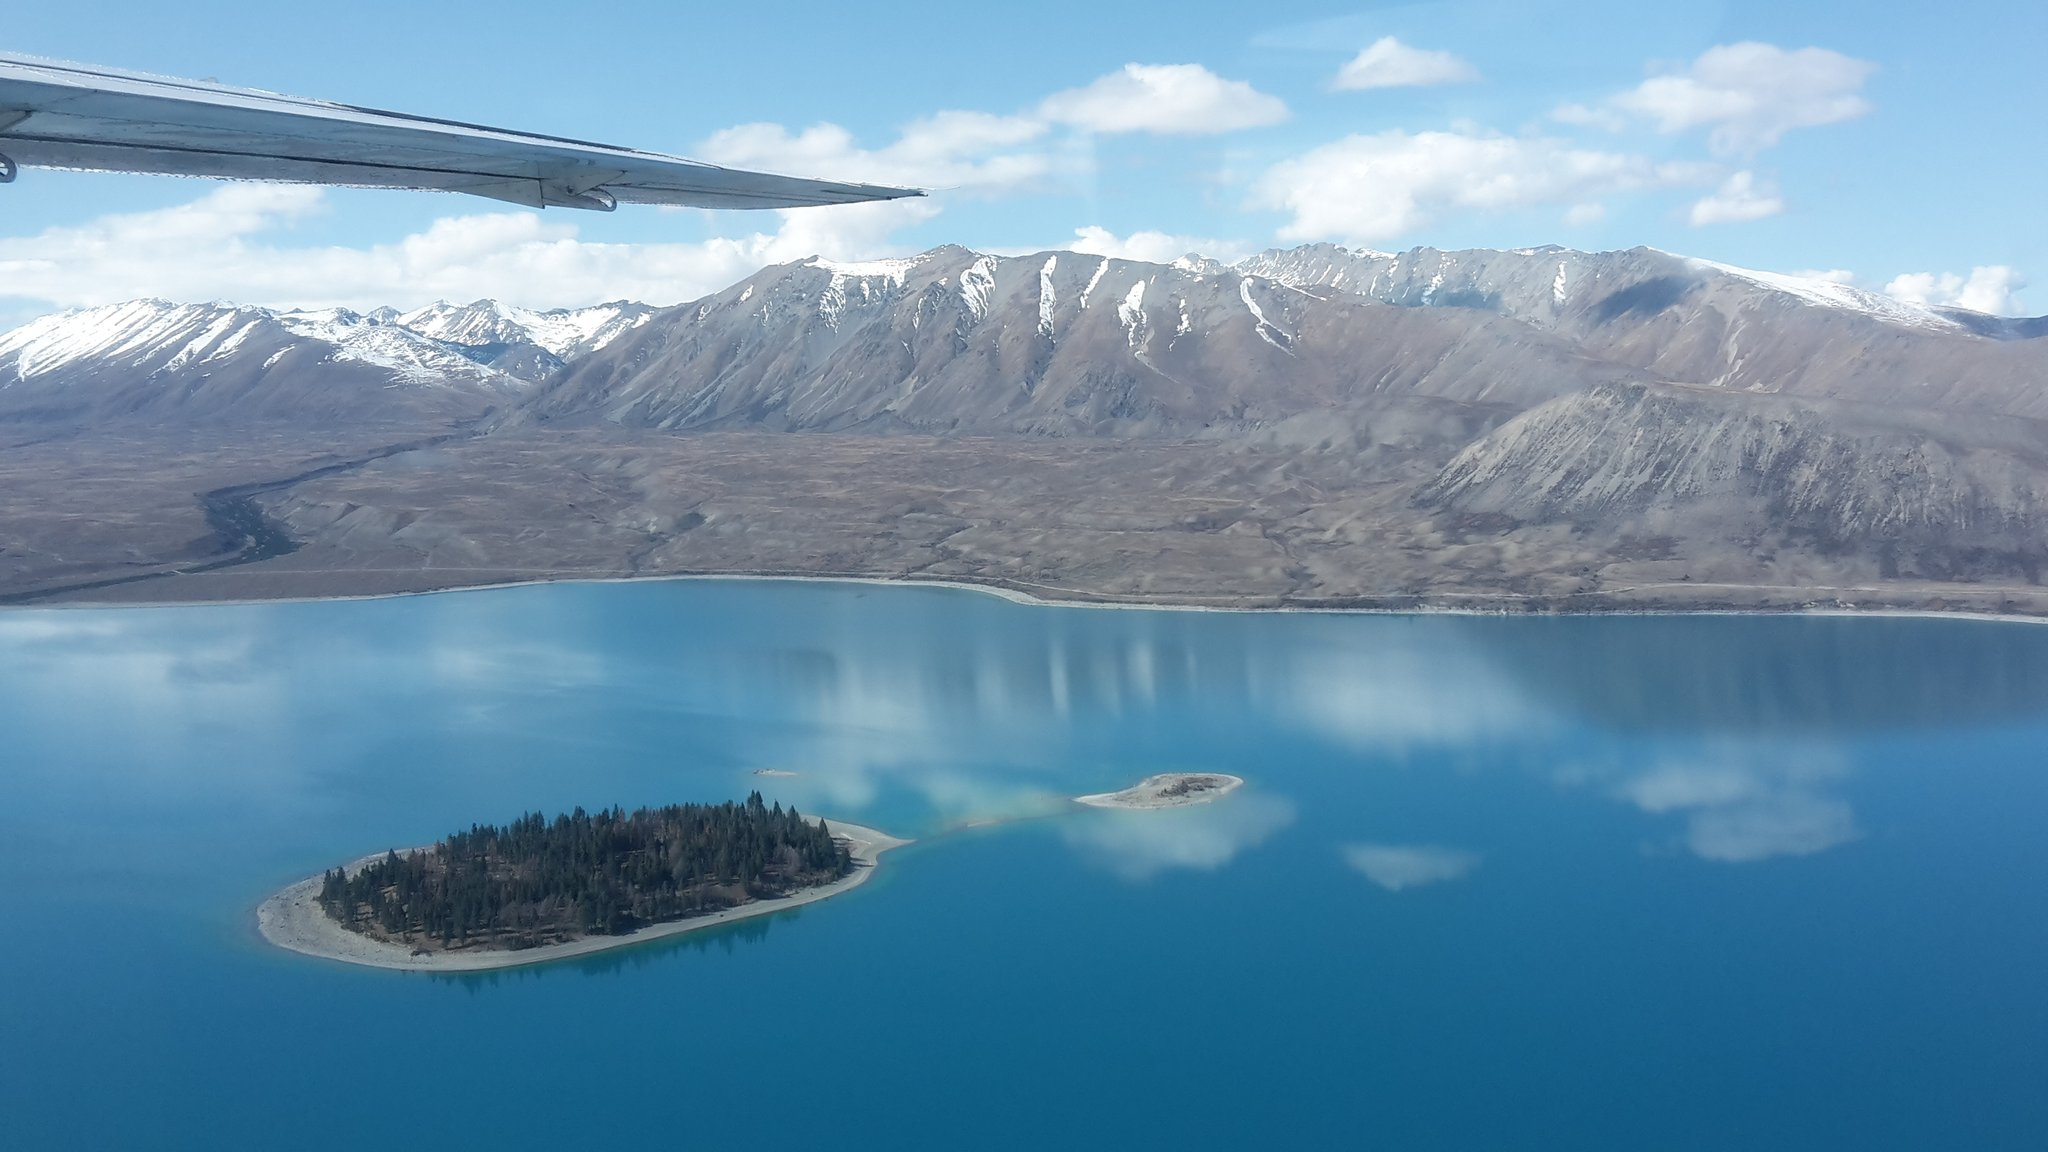 The colours of Lake Tekapo from the air. @AirSafaris  #NZmustdo #ConservationWeek https://t.co/0tvqWgQkQn